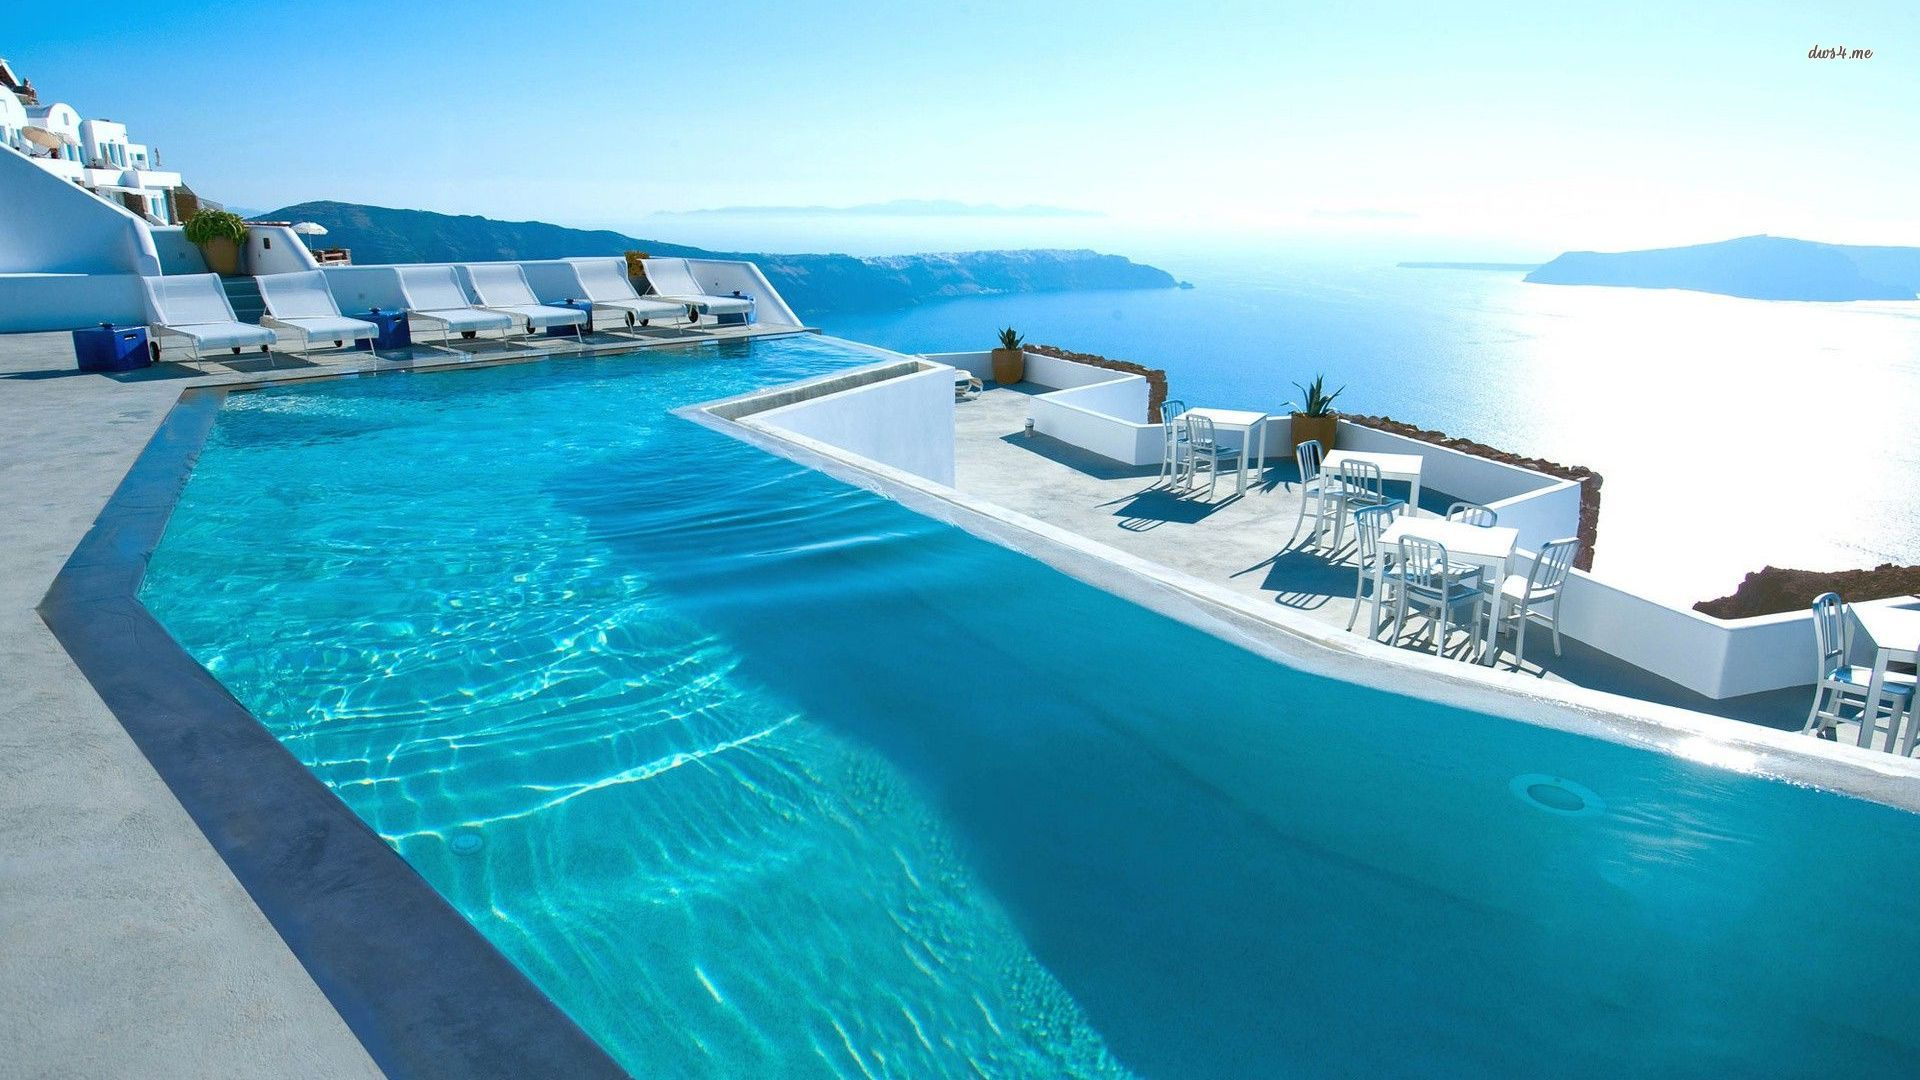 Grace Santorini Hotel pool wallpaper   Beach wallpapers   26450 1920x1080